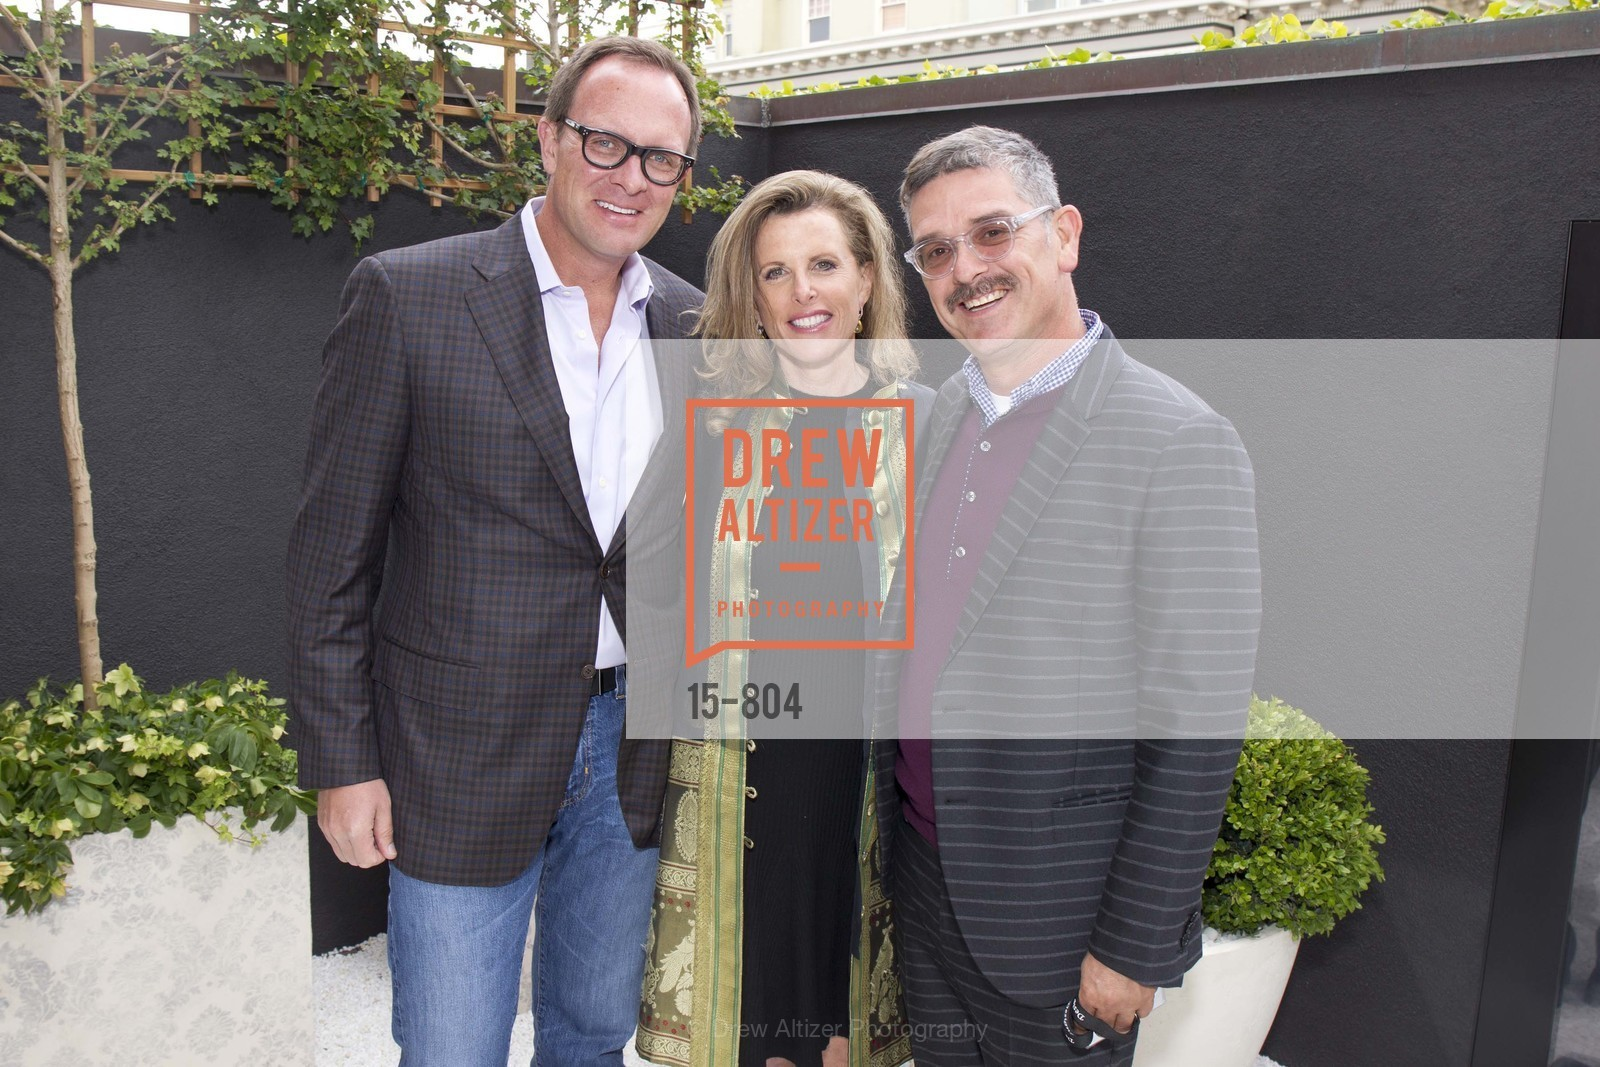 John Lemar, Faith Wheeler, Frank Eddie, San Francisco Decorator Showcase Opening Night Party, US, April 24th, 2015,Drew Altizer, Drew Altizer Photography, full-service agency, private events, San Francisco photographer, photographer california